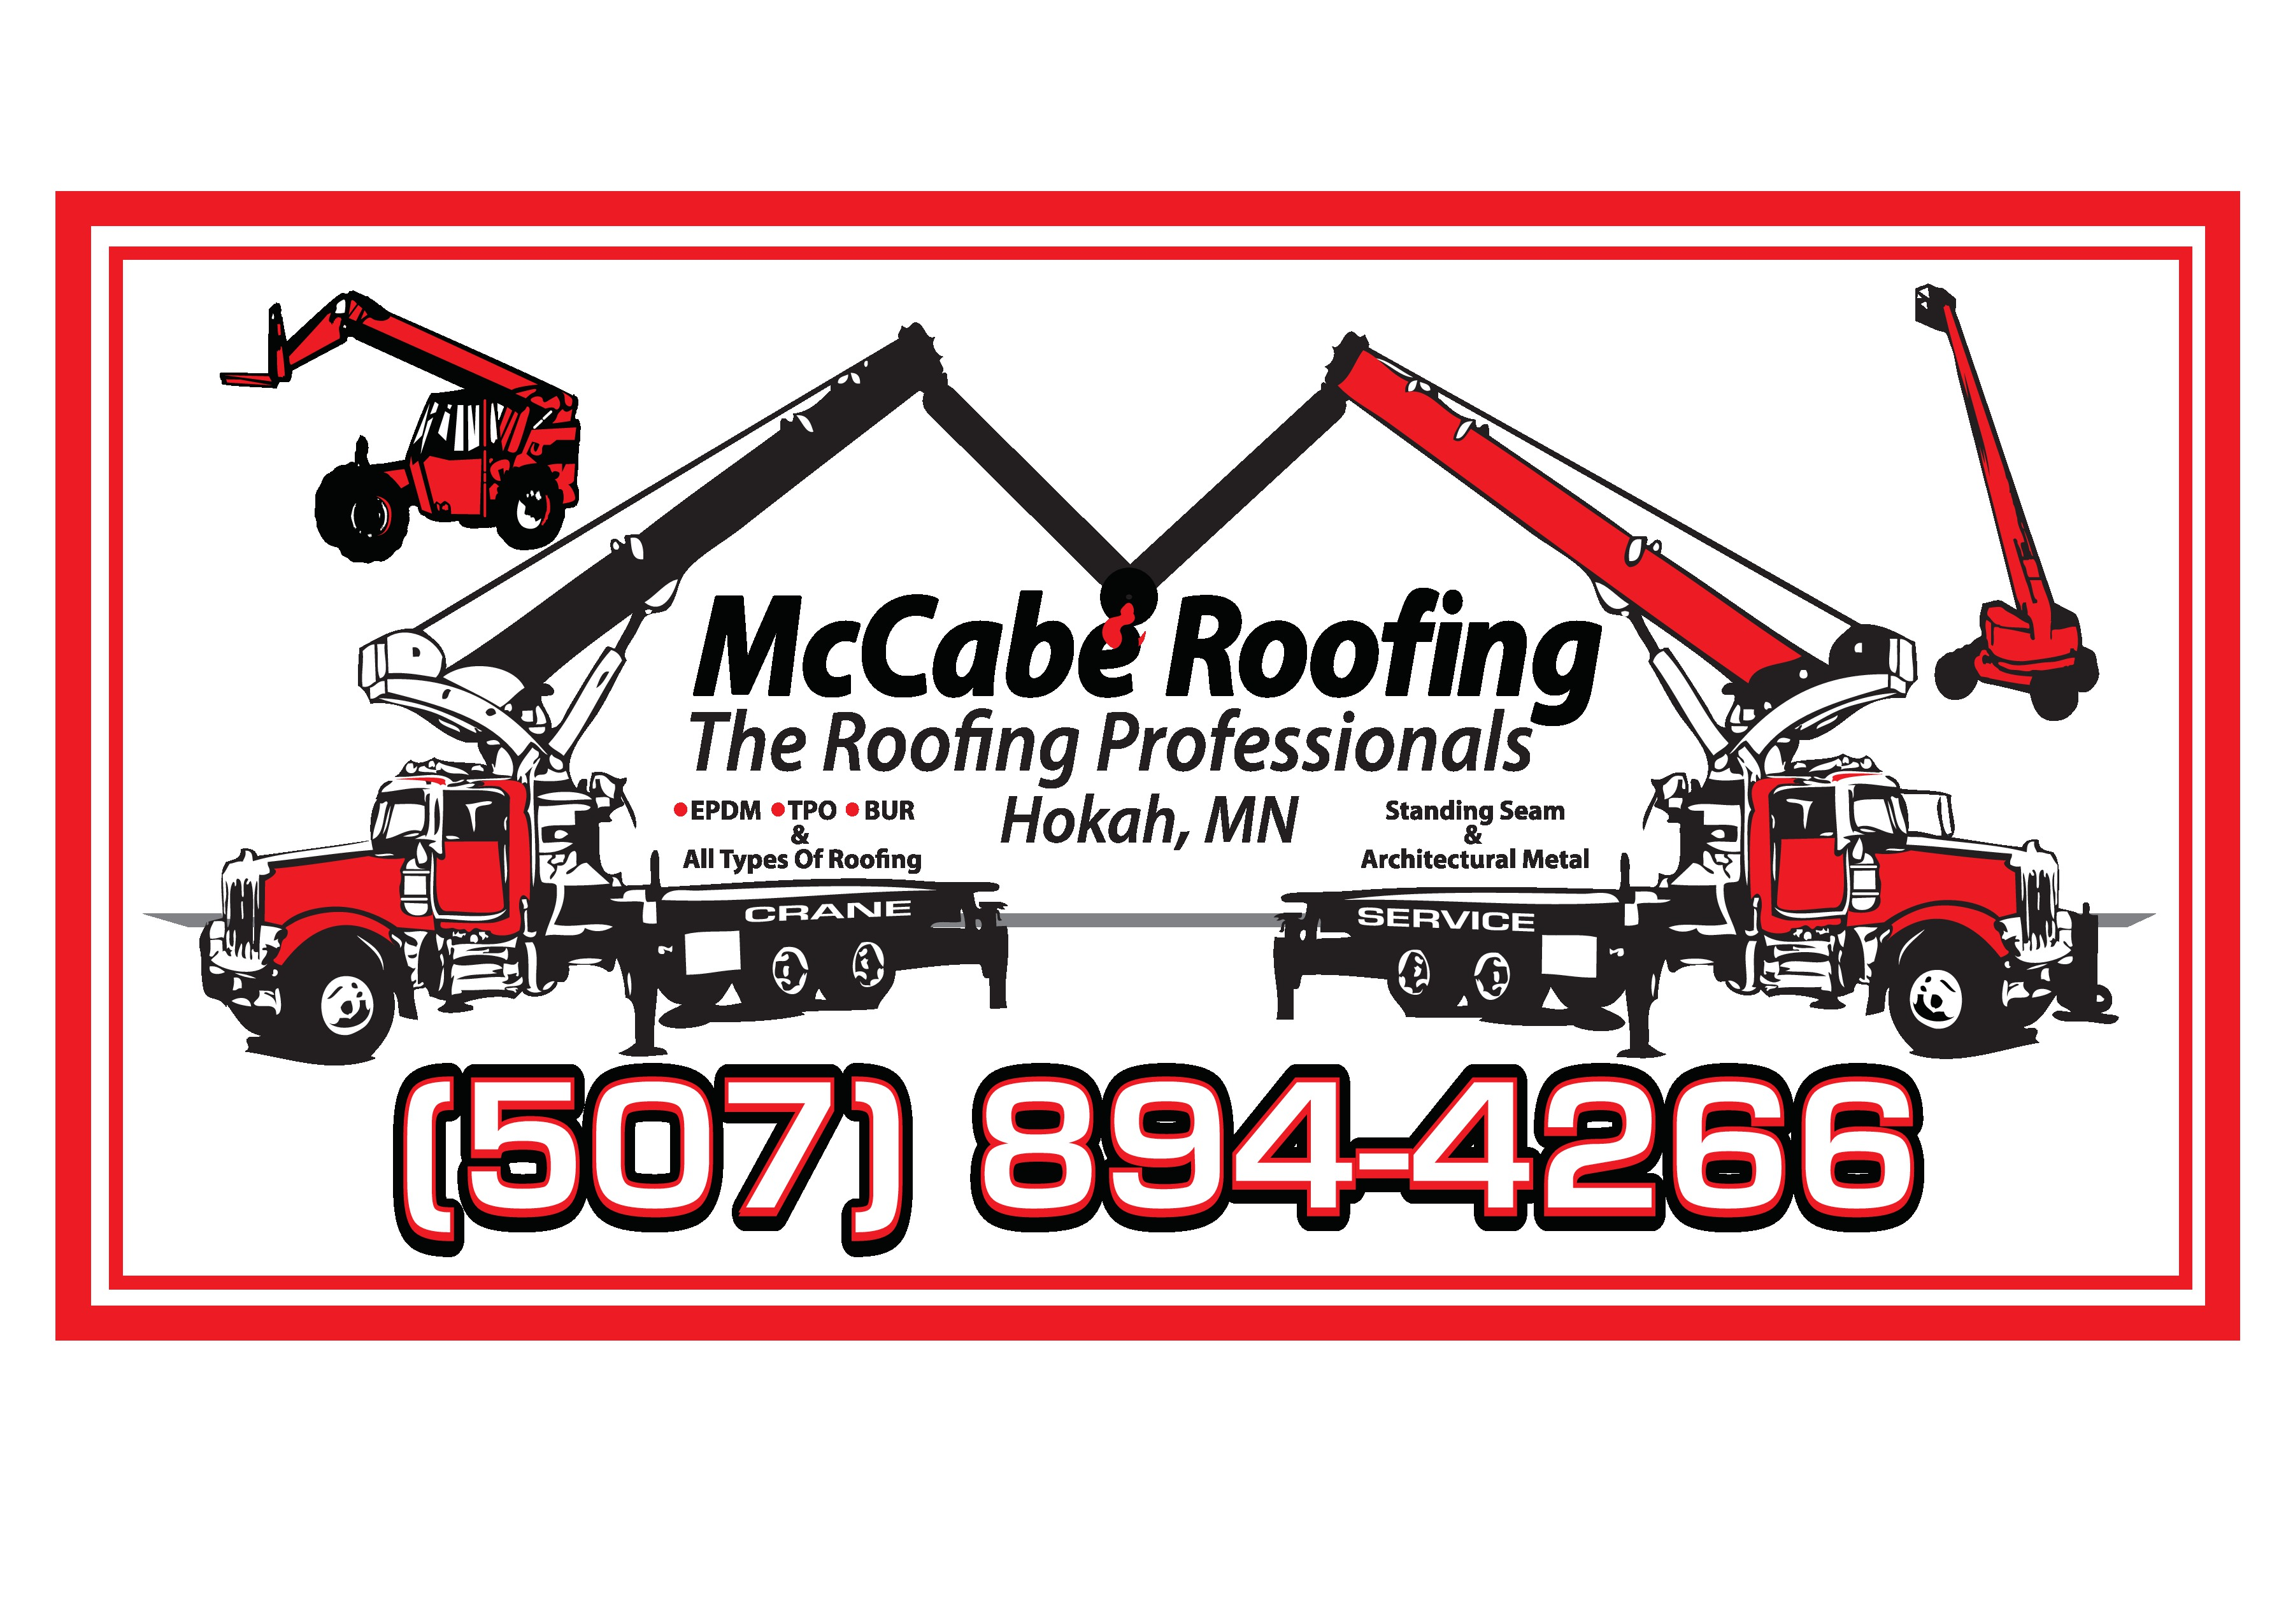 McCabe Roofing logo